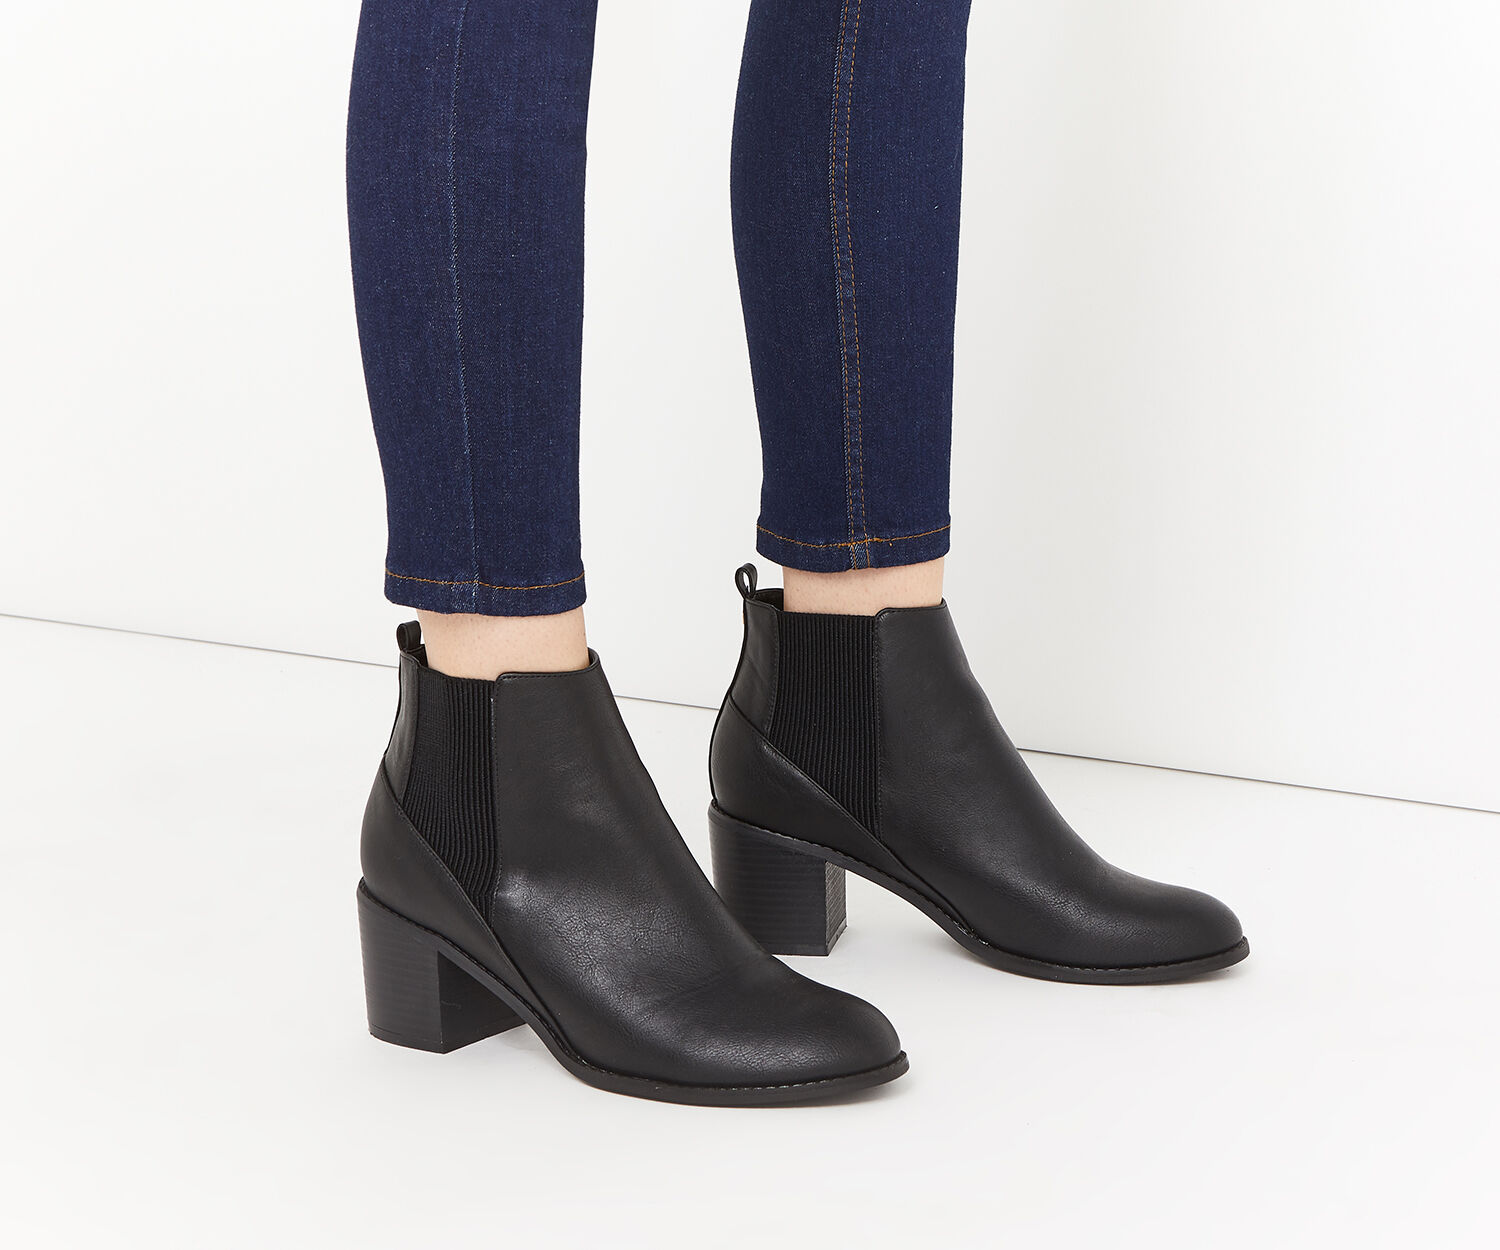 Oasis, FRANKIE CASUAL BOOT Black 1